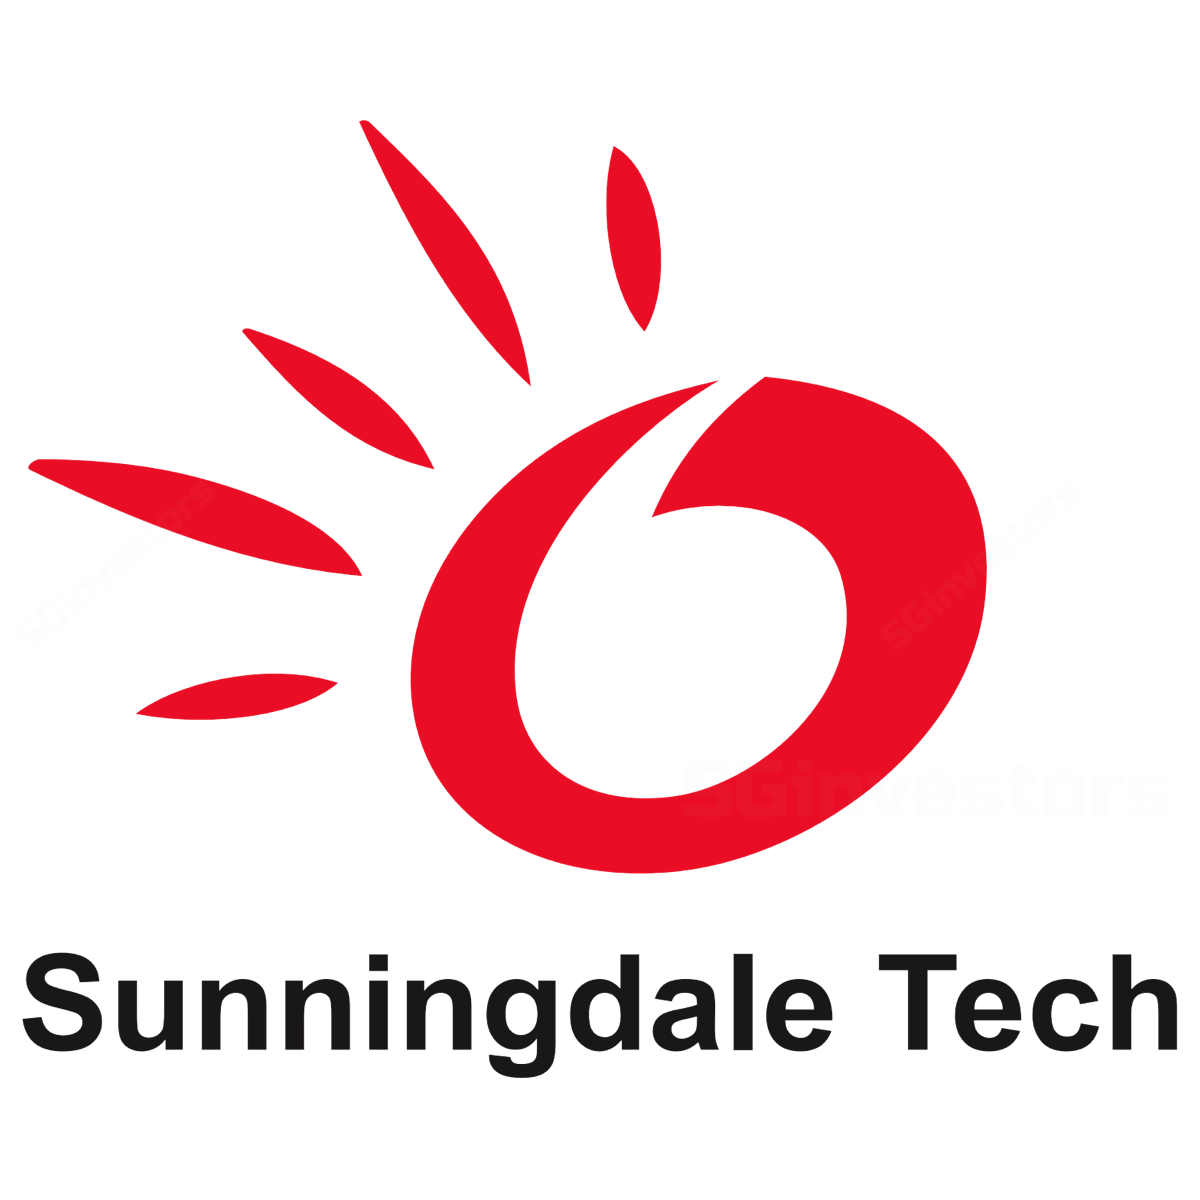 Sunningdale Tech Ltd - CIMB Research 2017-11-09: Held Back By Unrealised Exchange Losses